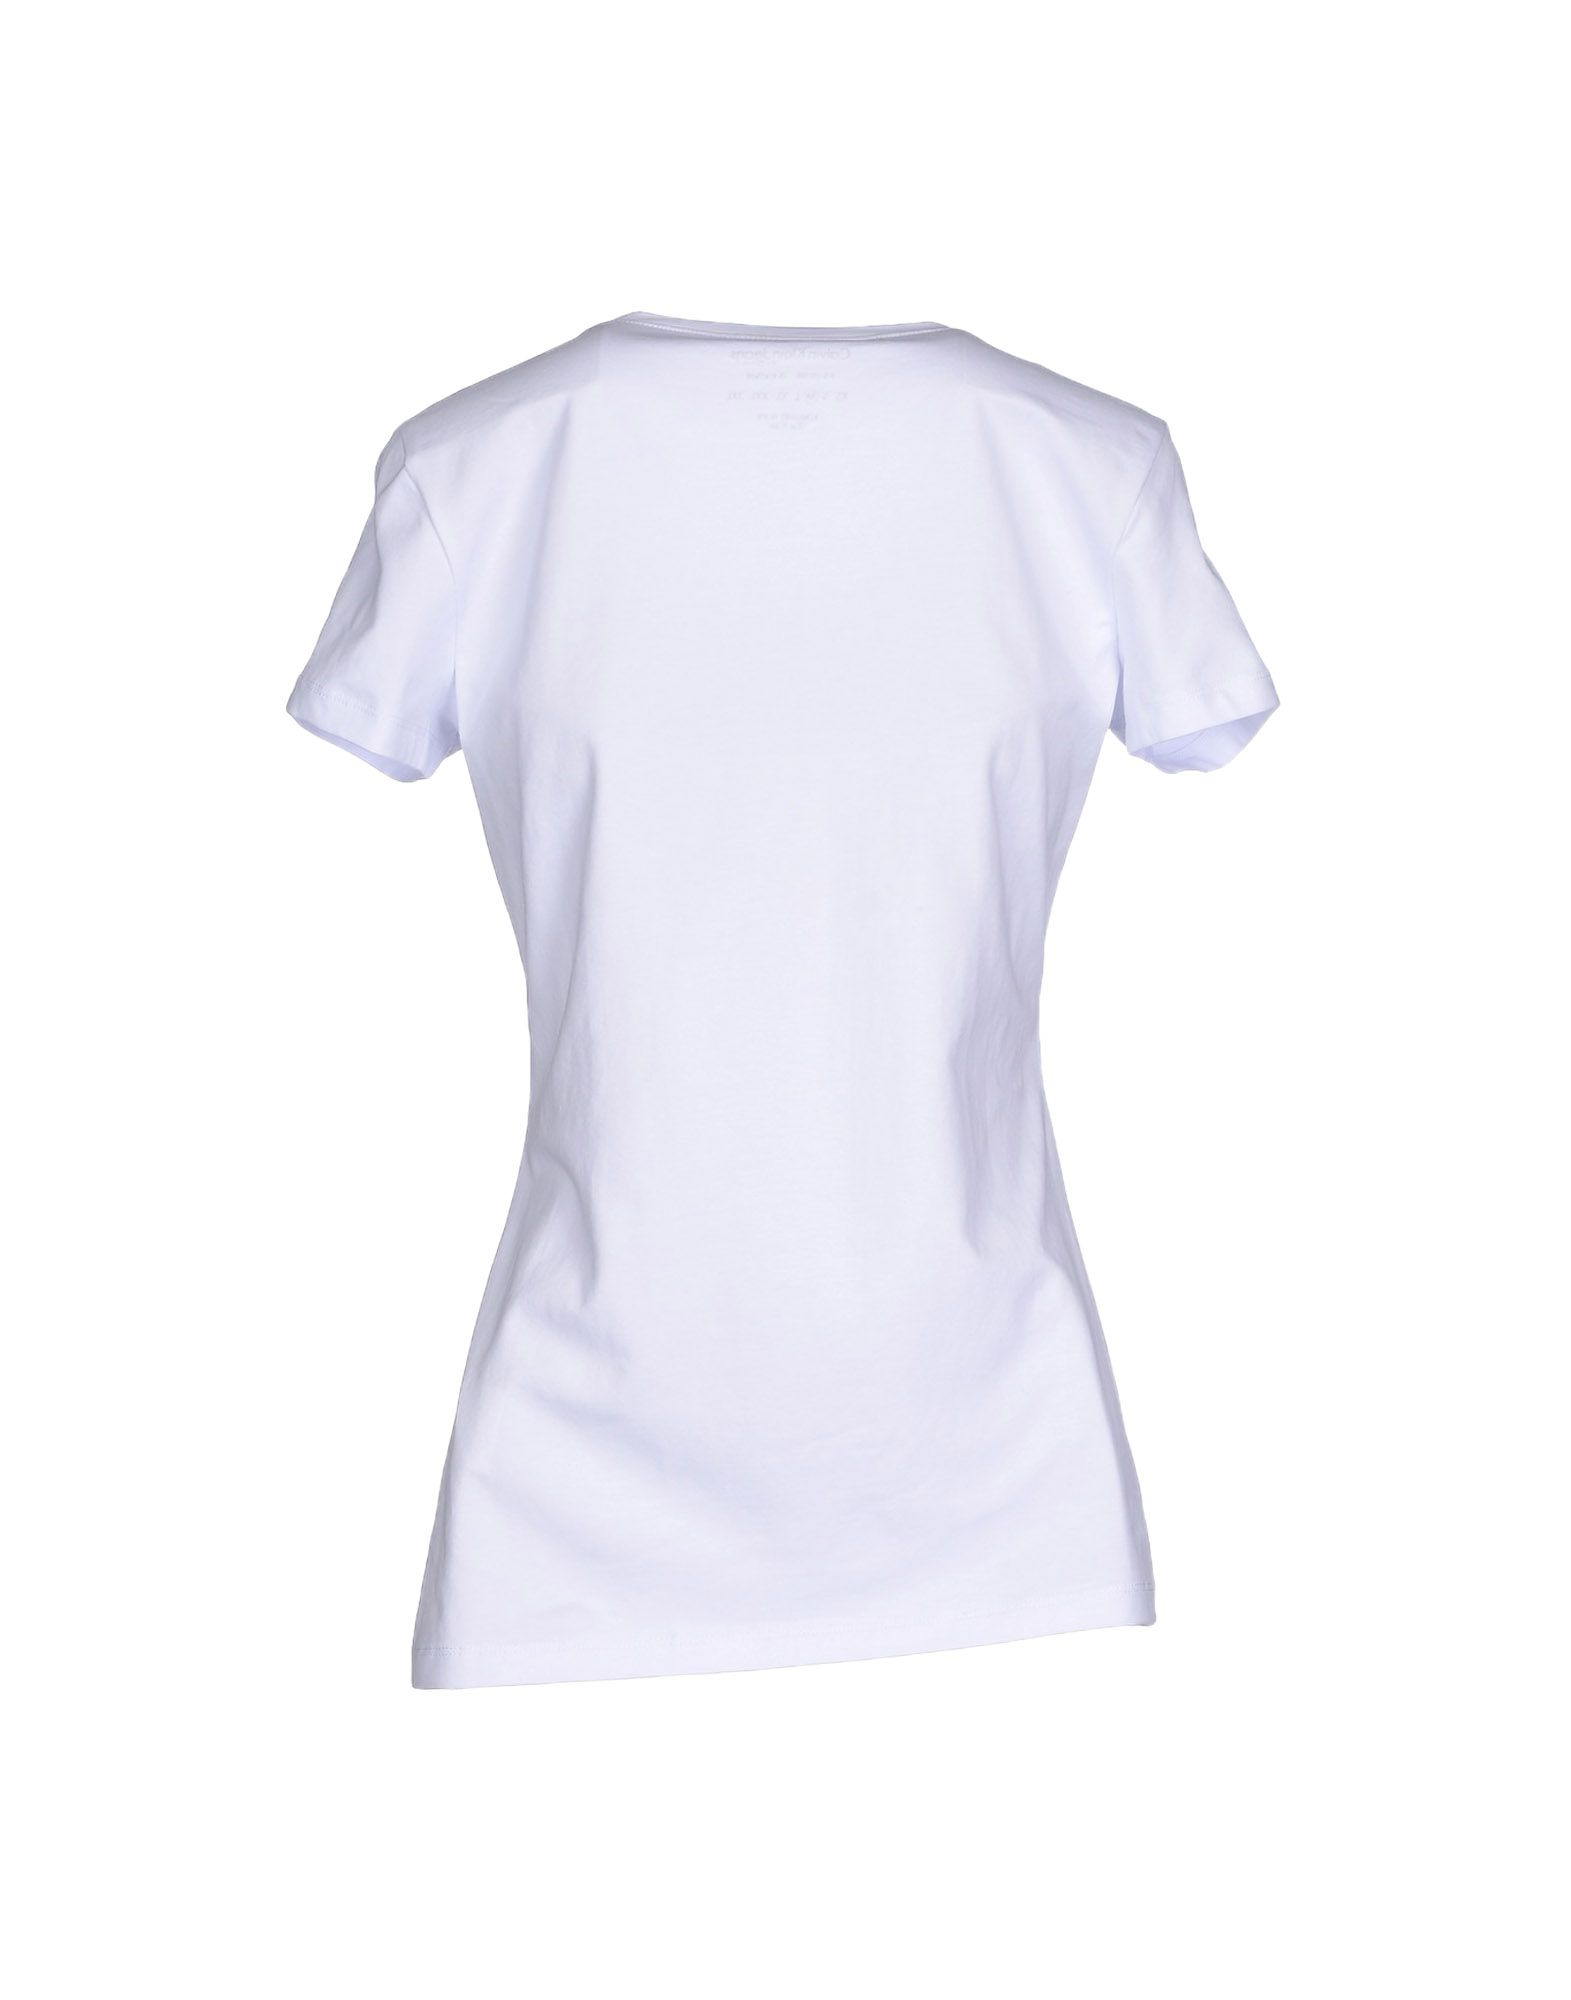 lyst calvin klein jeans t shirt in white. Black Bedroom Furniture Sets. Home Design Ideas